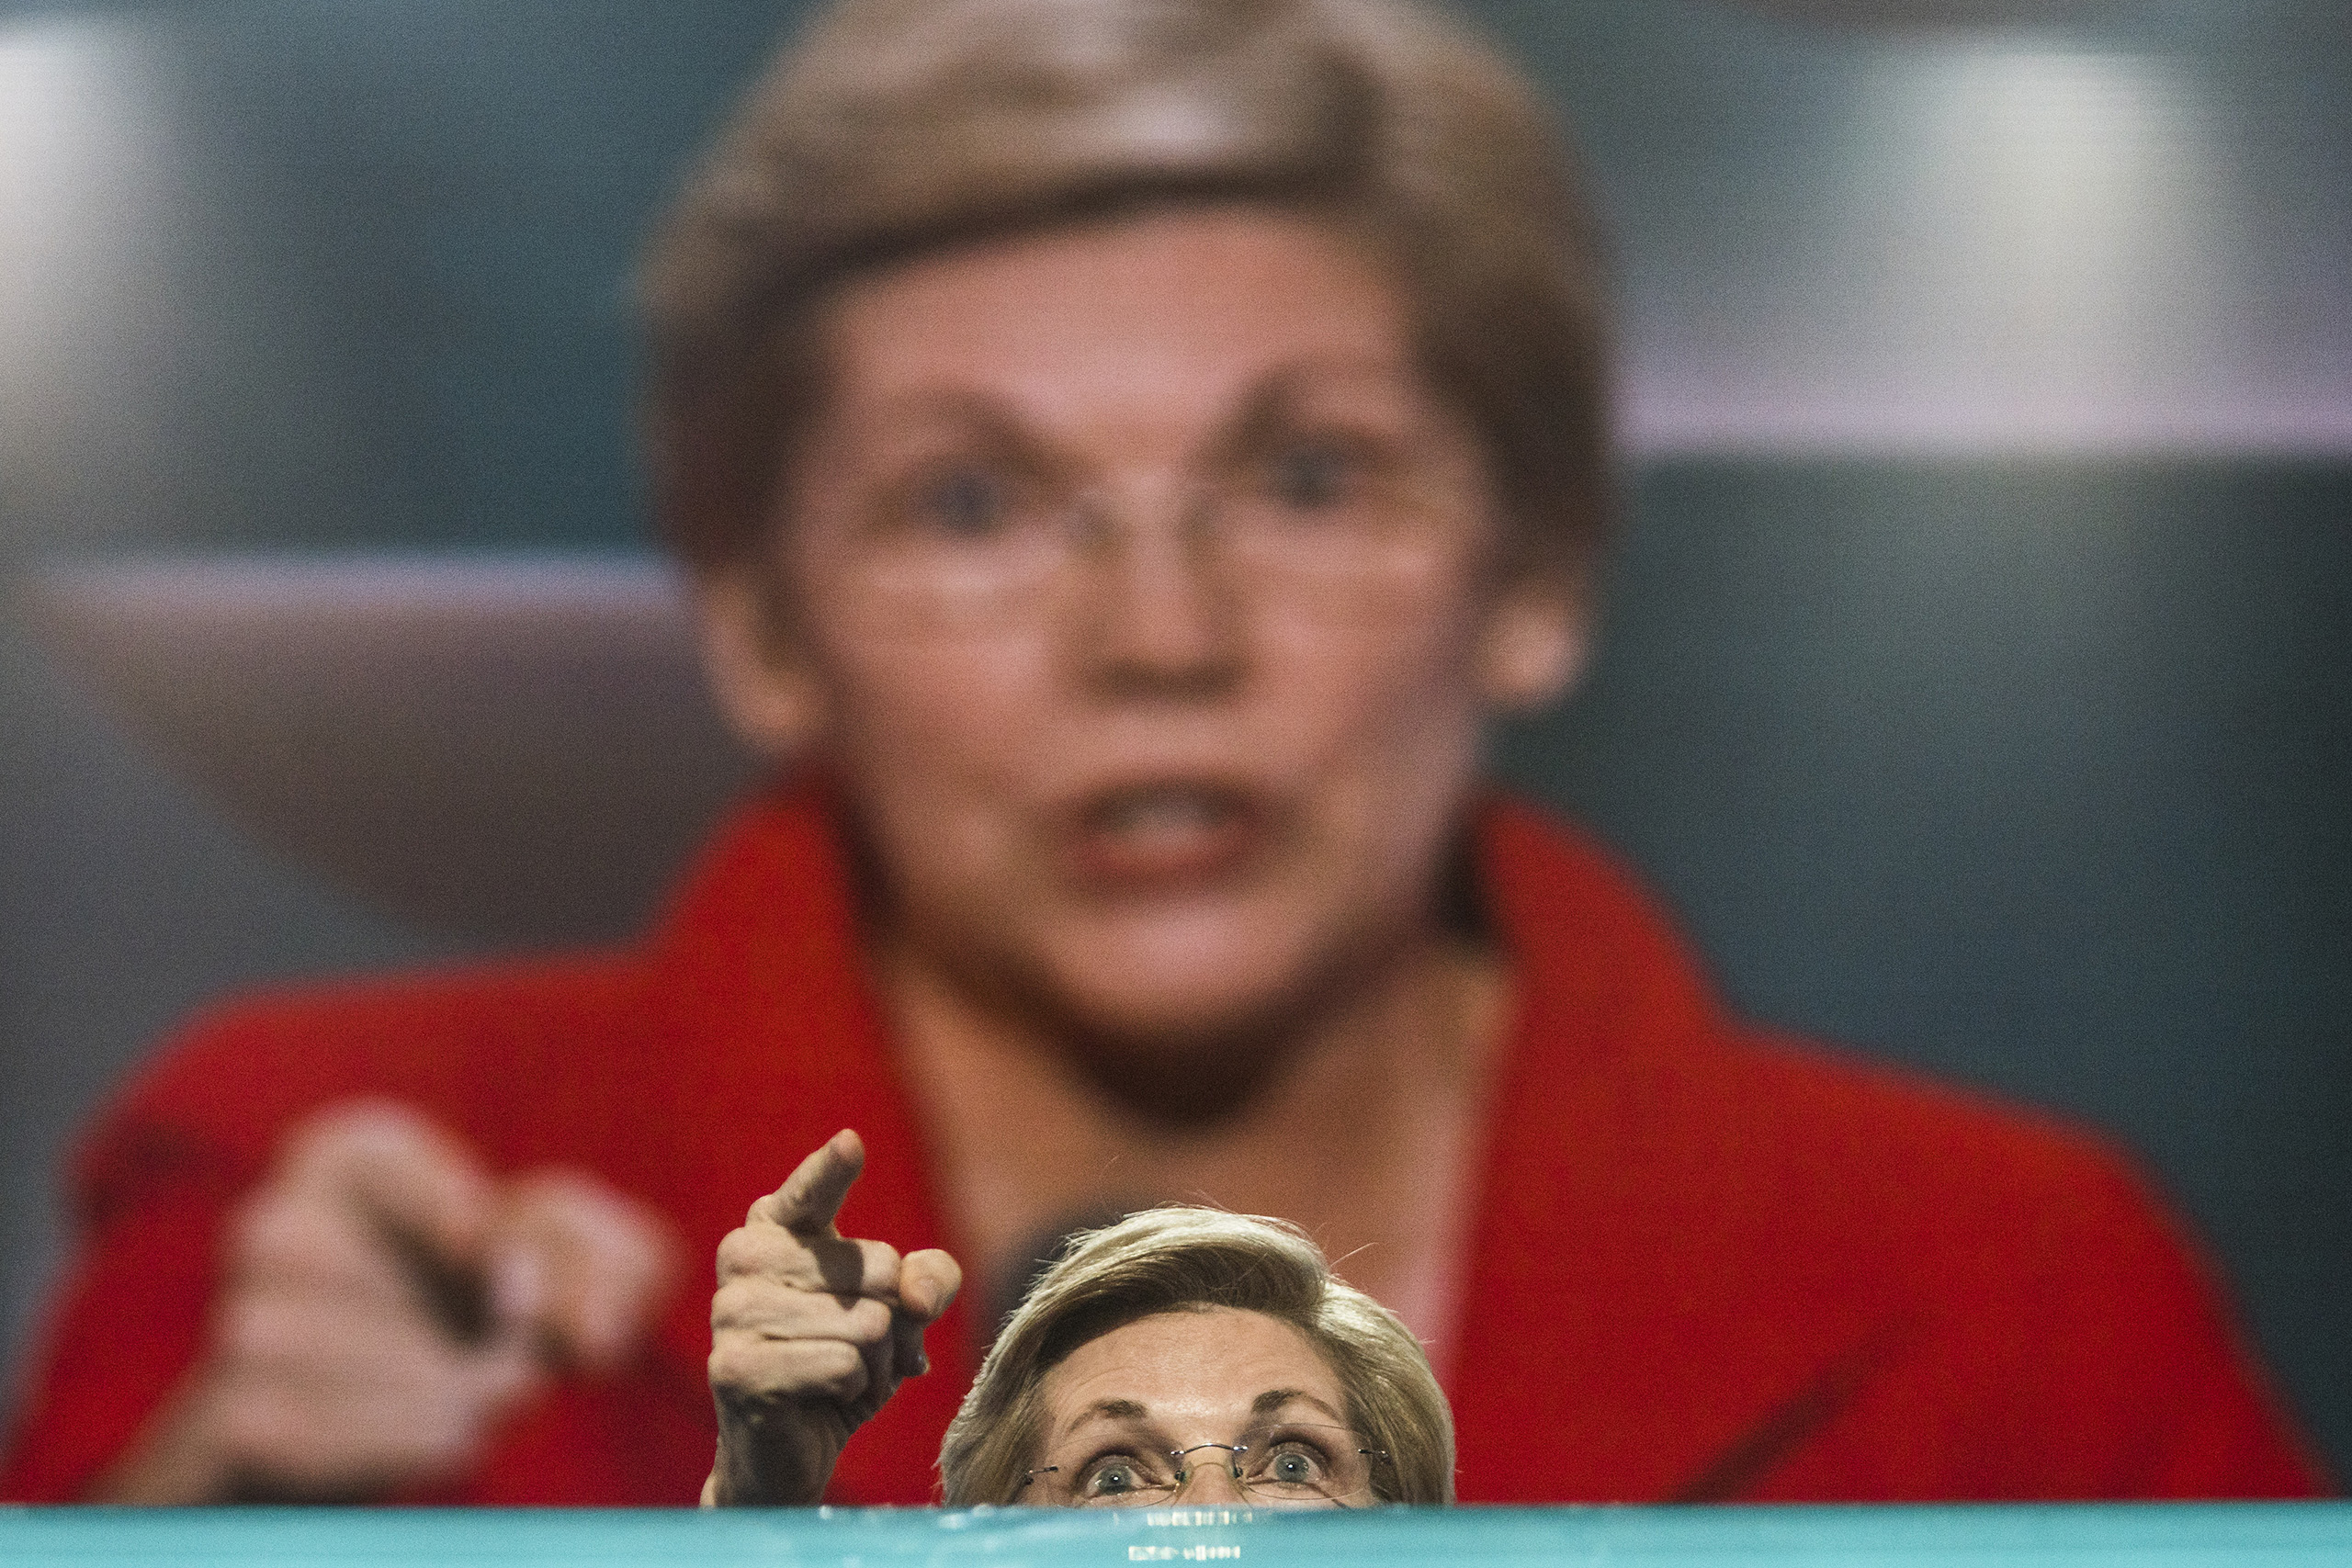 Senator Elizabeth Warren speaks during the first day of the Democratic National Convention at the Wells Fargo Center in Philadelphia, Pennsylvania, July 25, 2016.